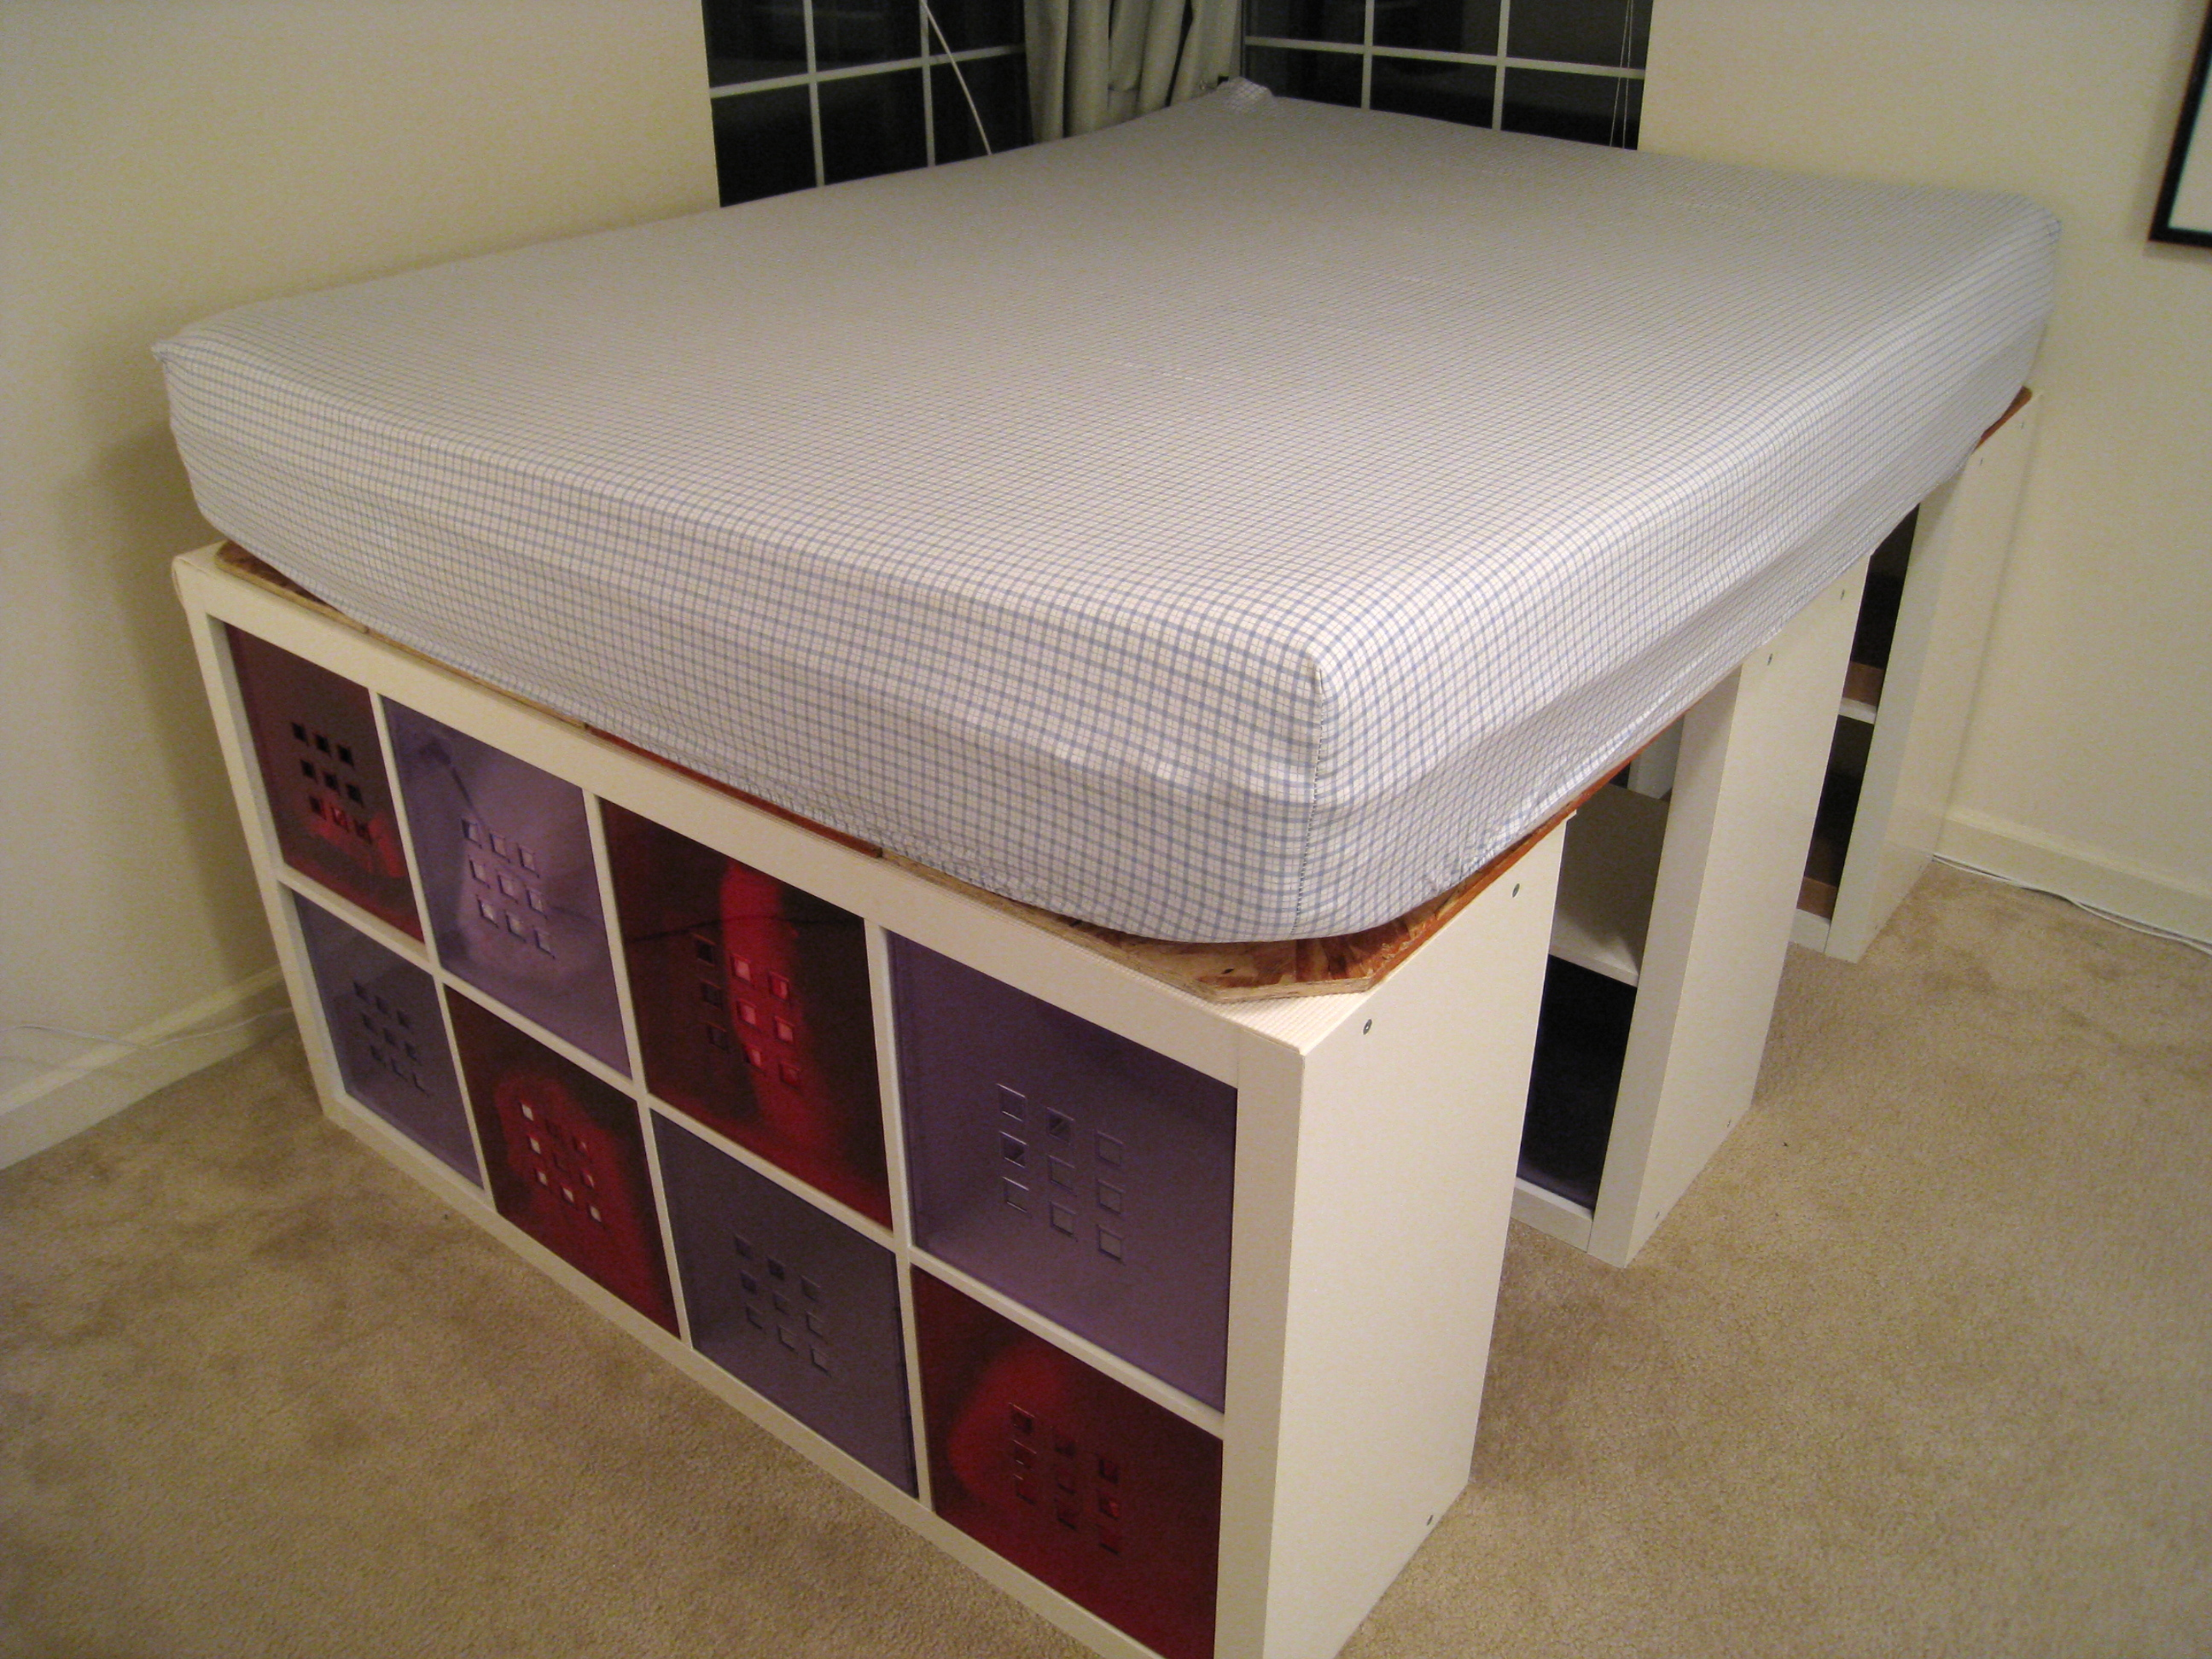 Queen Bed with Expedit Bookshelf Storage